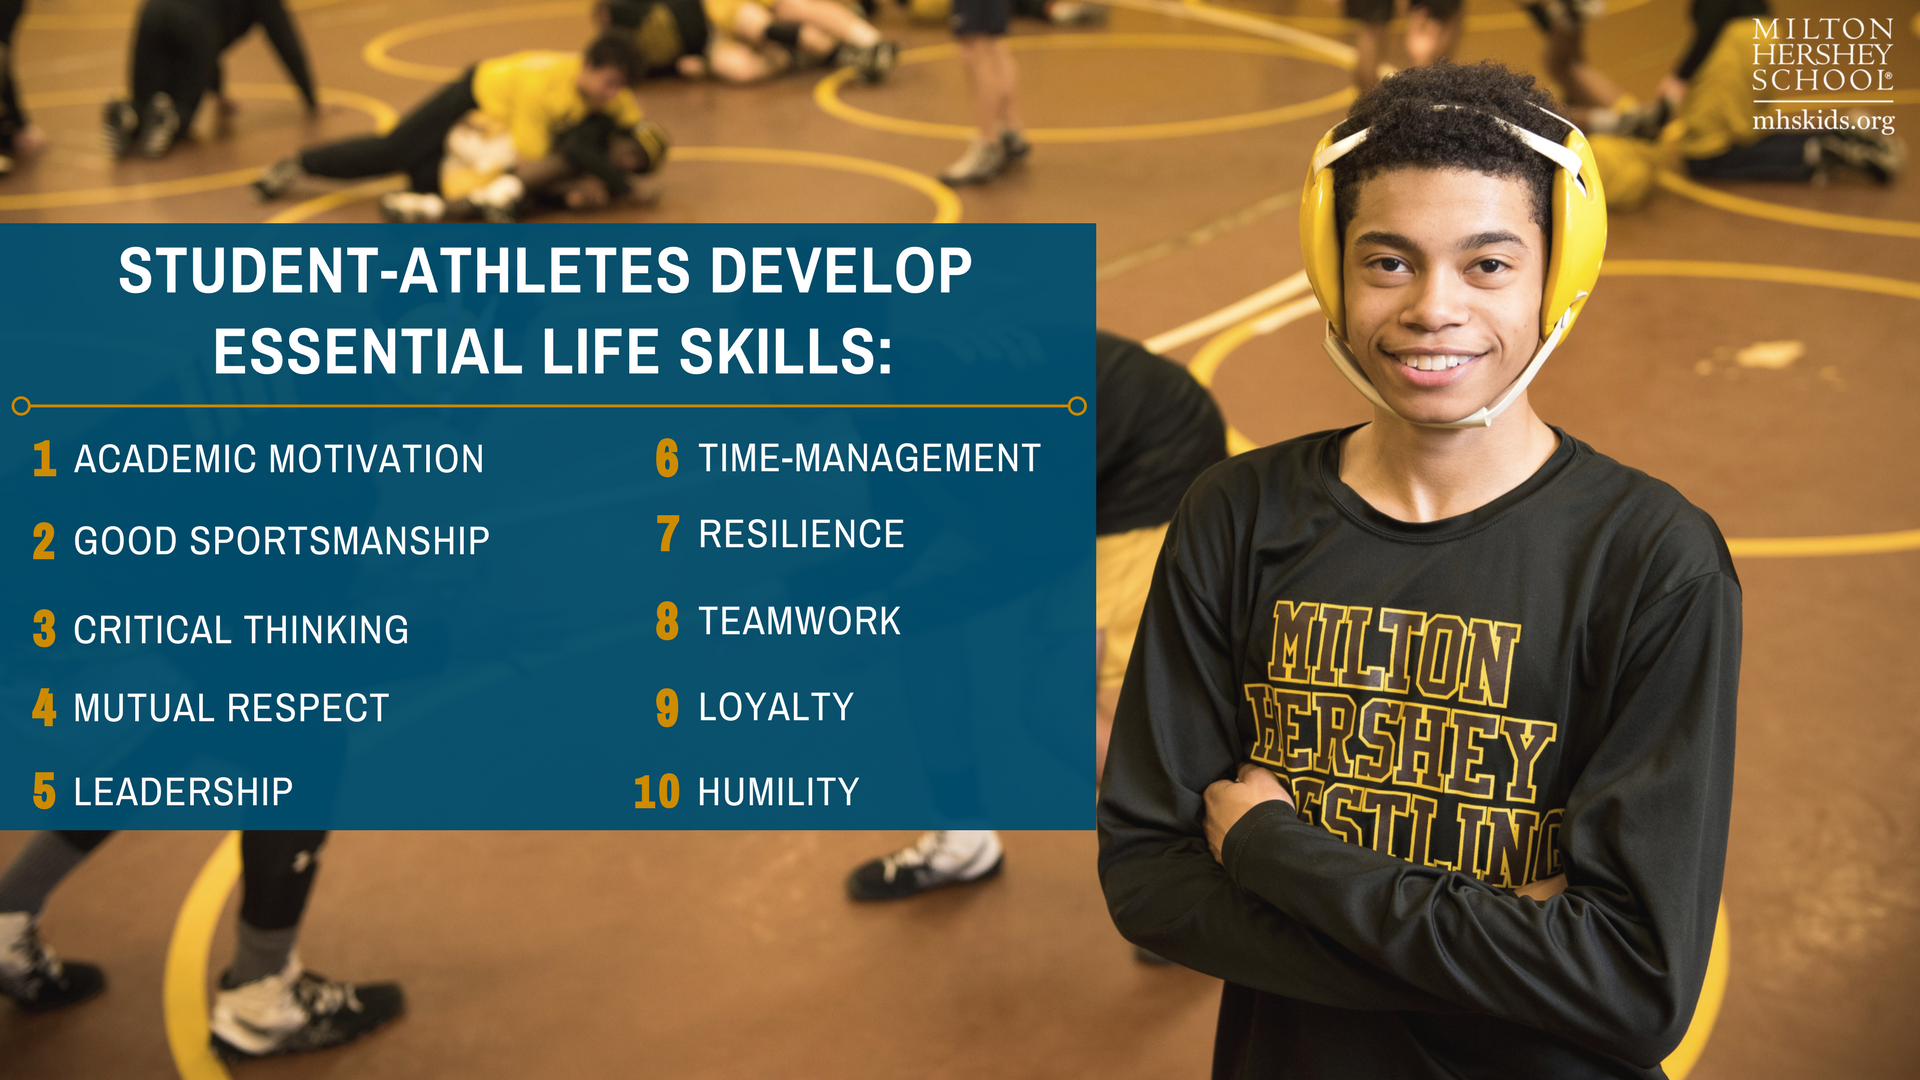 Athletic programming teaches kids to communicate, create goals, and stay active. Learn more about the life skills MHS students gain through athletics!